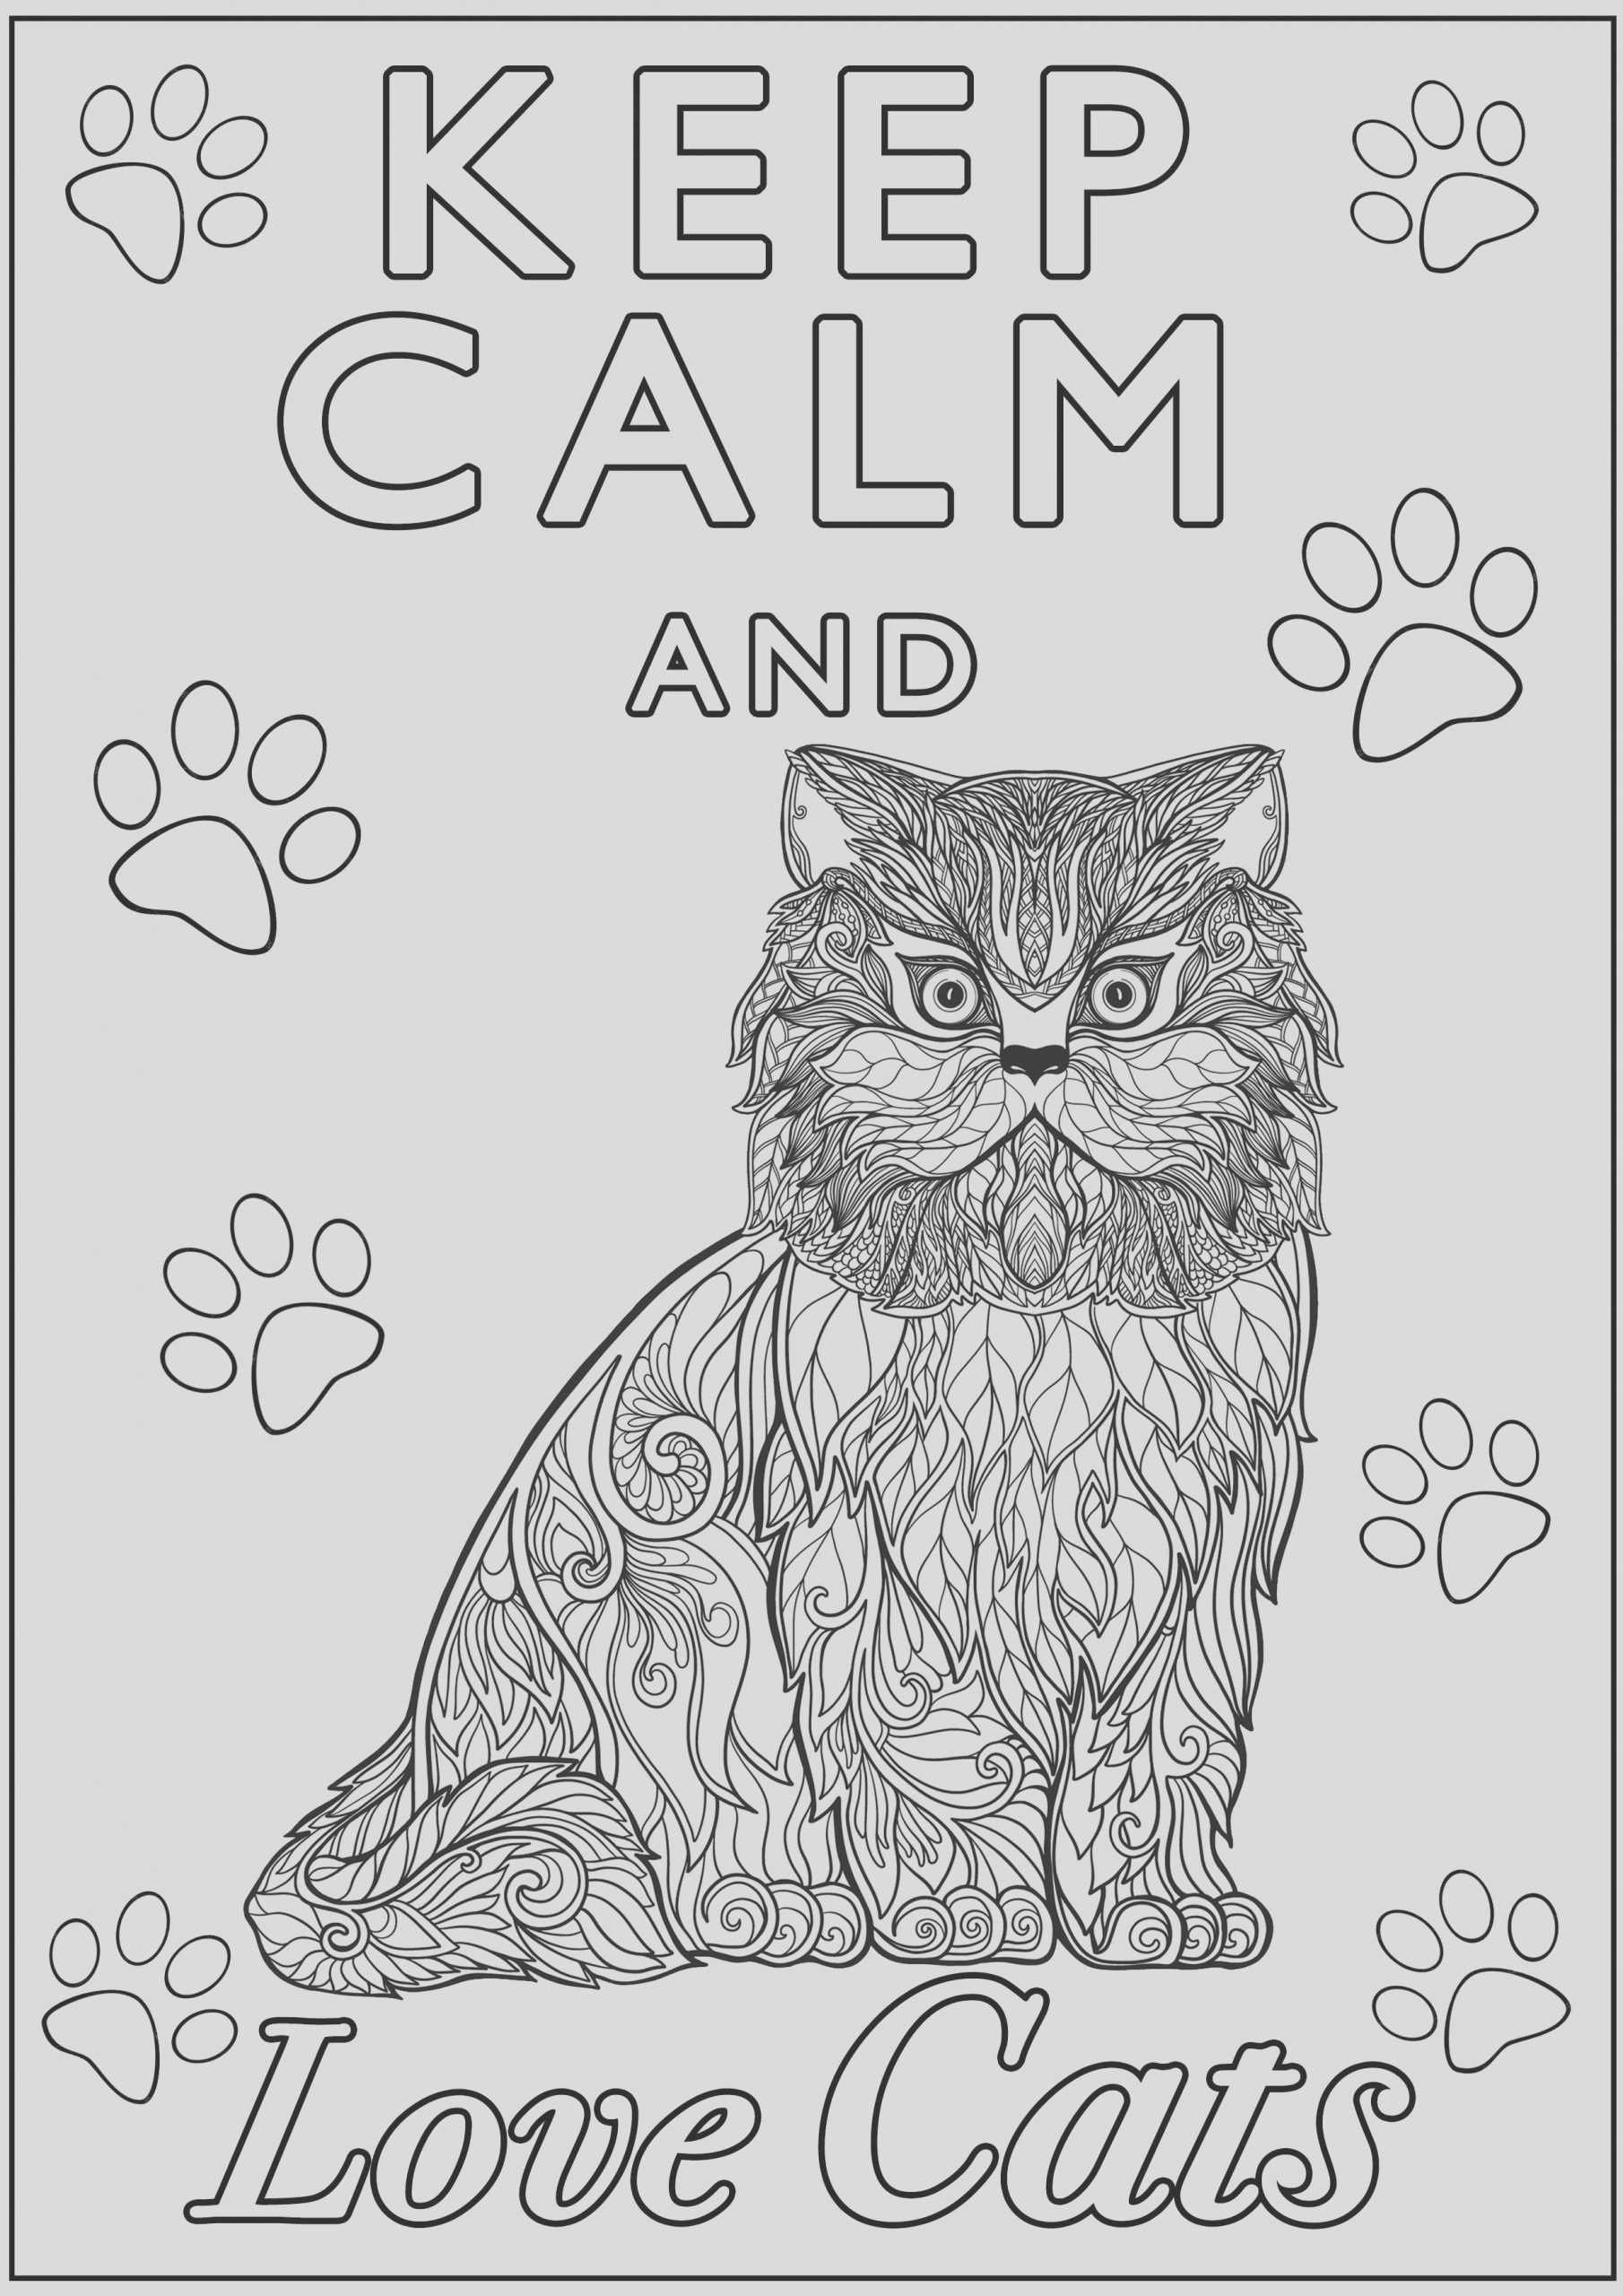 image=keep calm and coloring keep calm and love cats 1